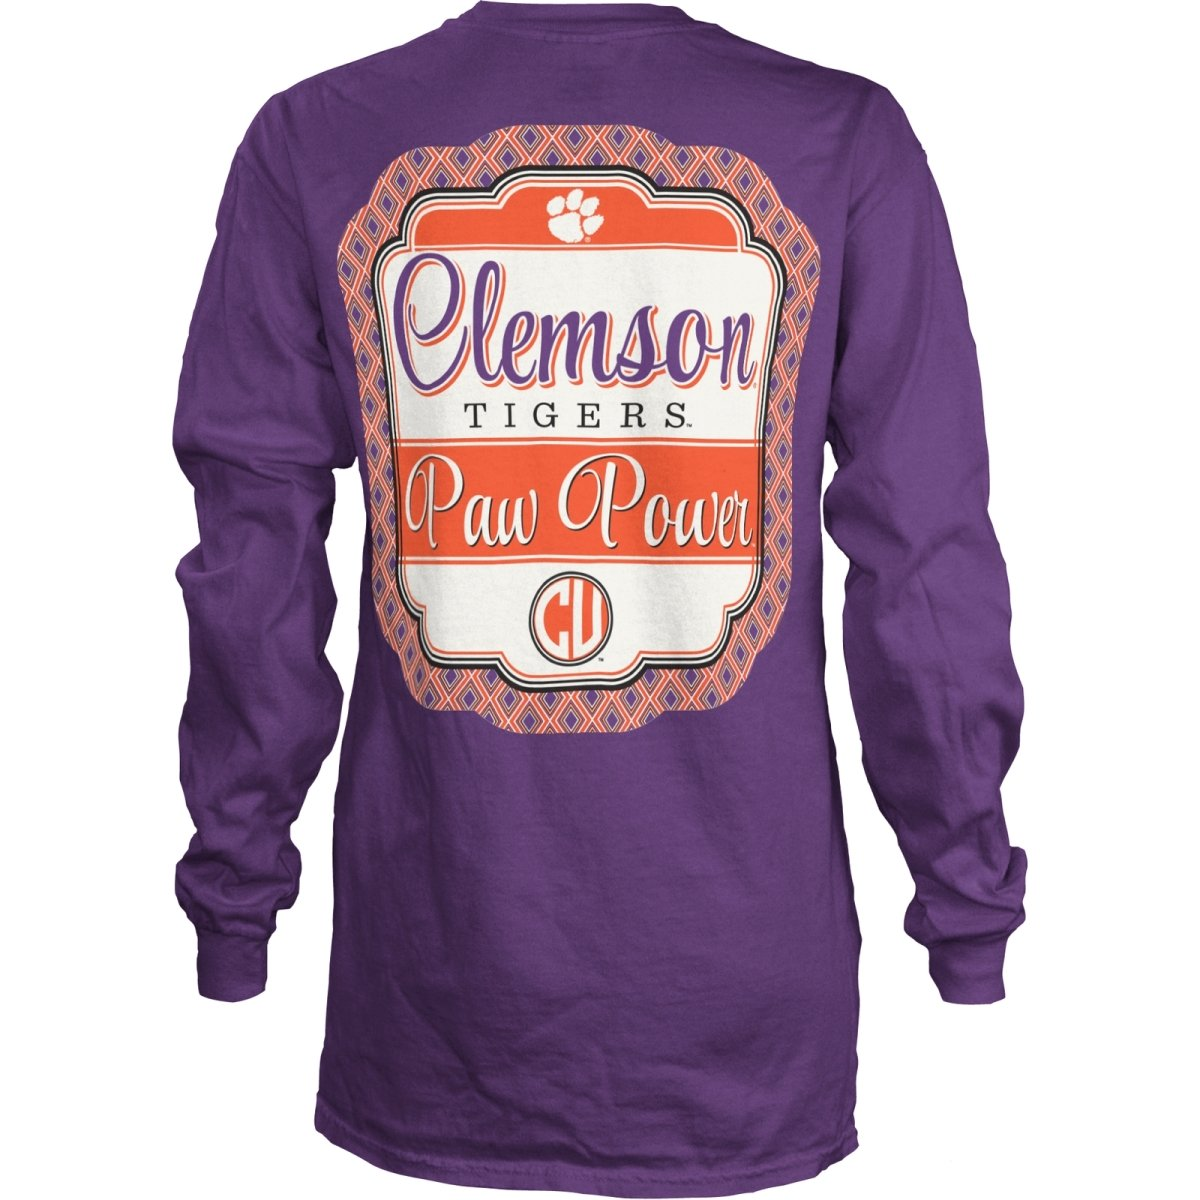 Ladies Long Sleeve Tee Diamond Frame Paw Power - Mr. Knickerbocker